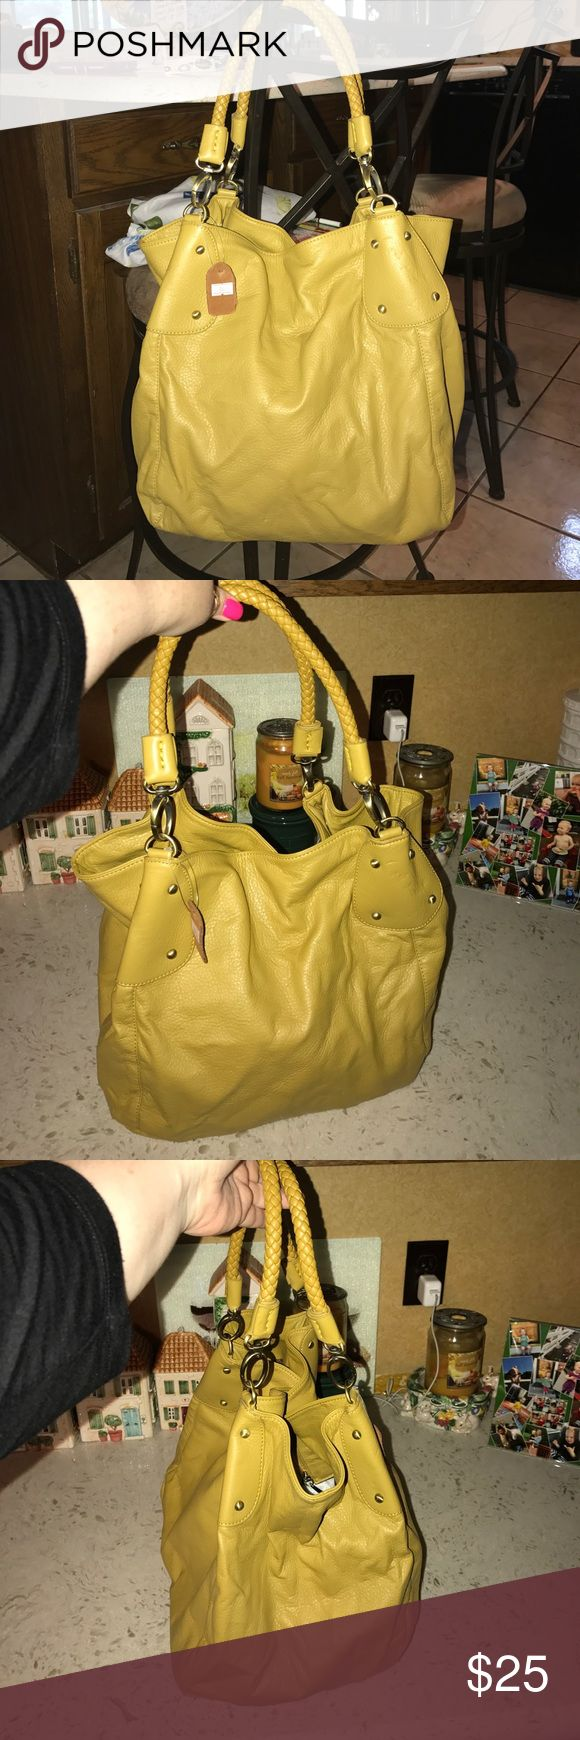 Soft lime slouch bag w/ magnetic close never used Soft lime leather bag with magnetic closure and zipper inside - new never been used - small tag Bags Satchels